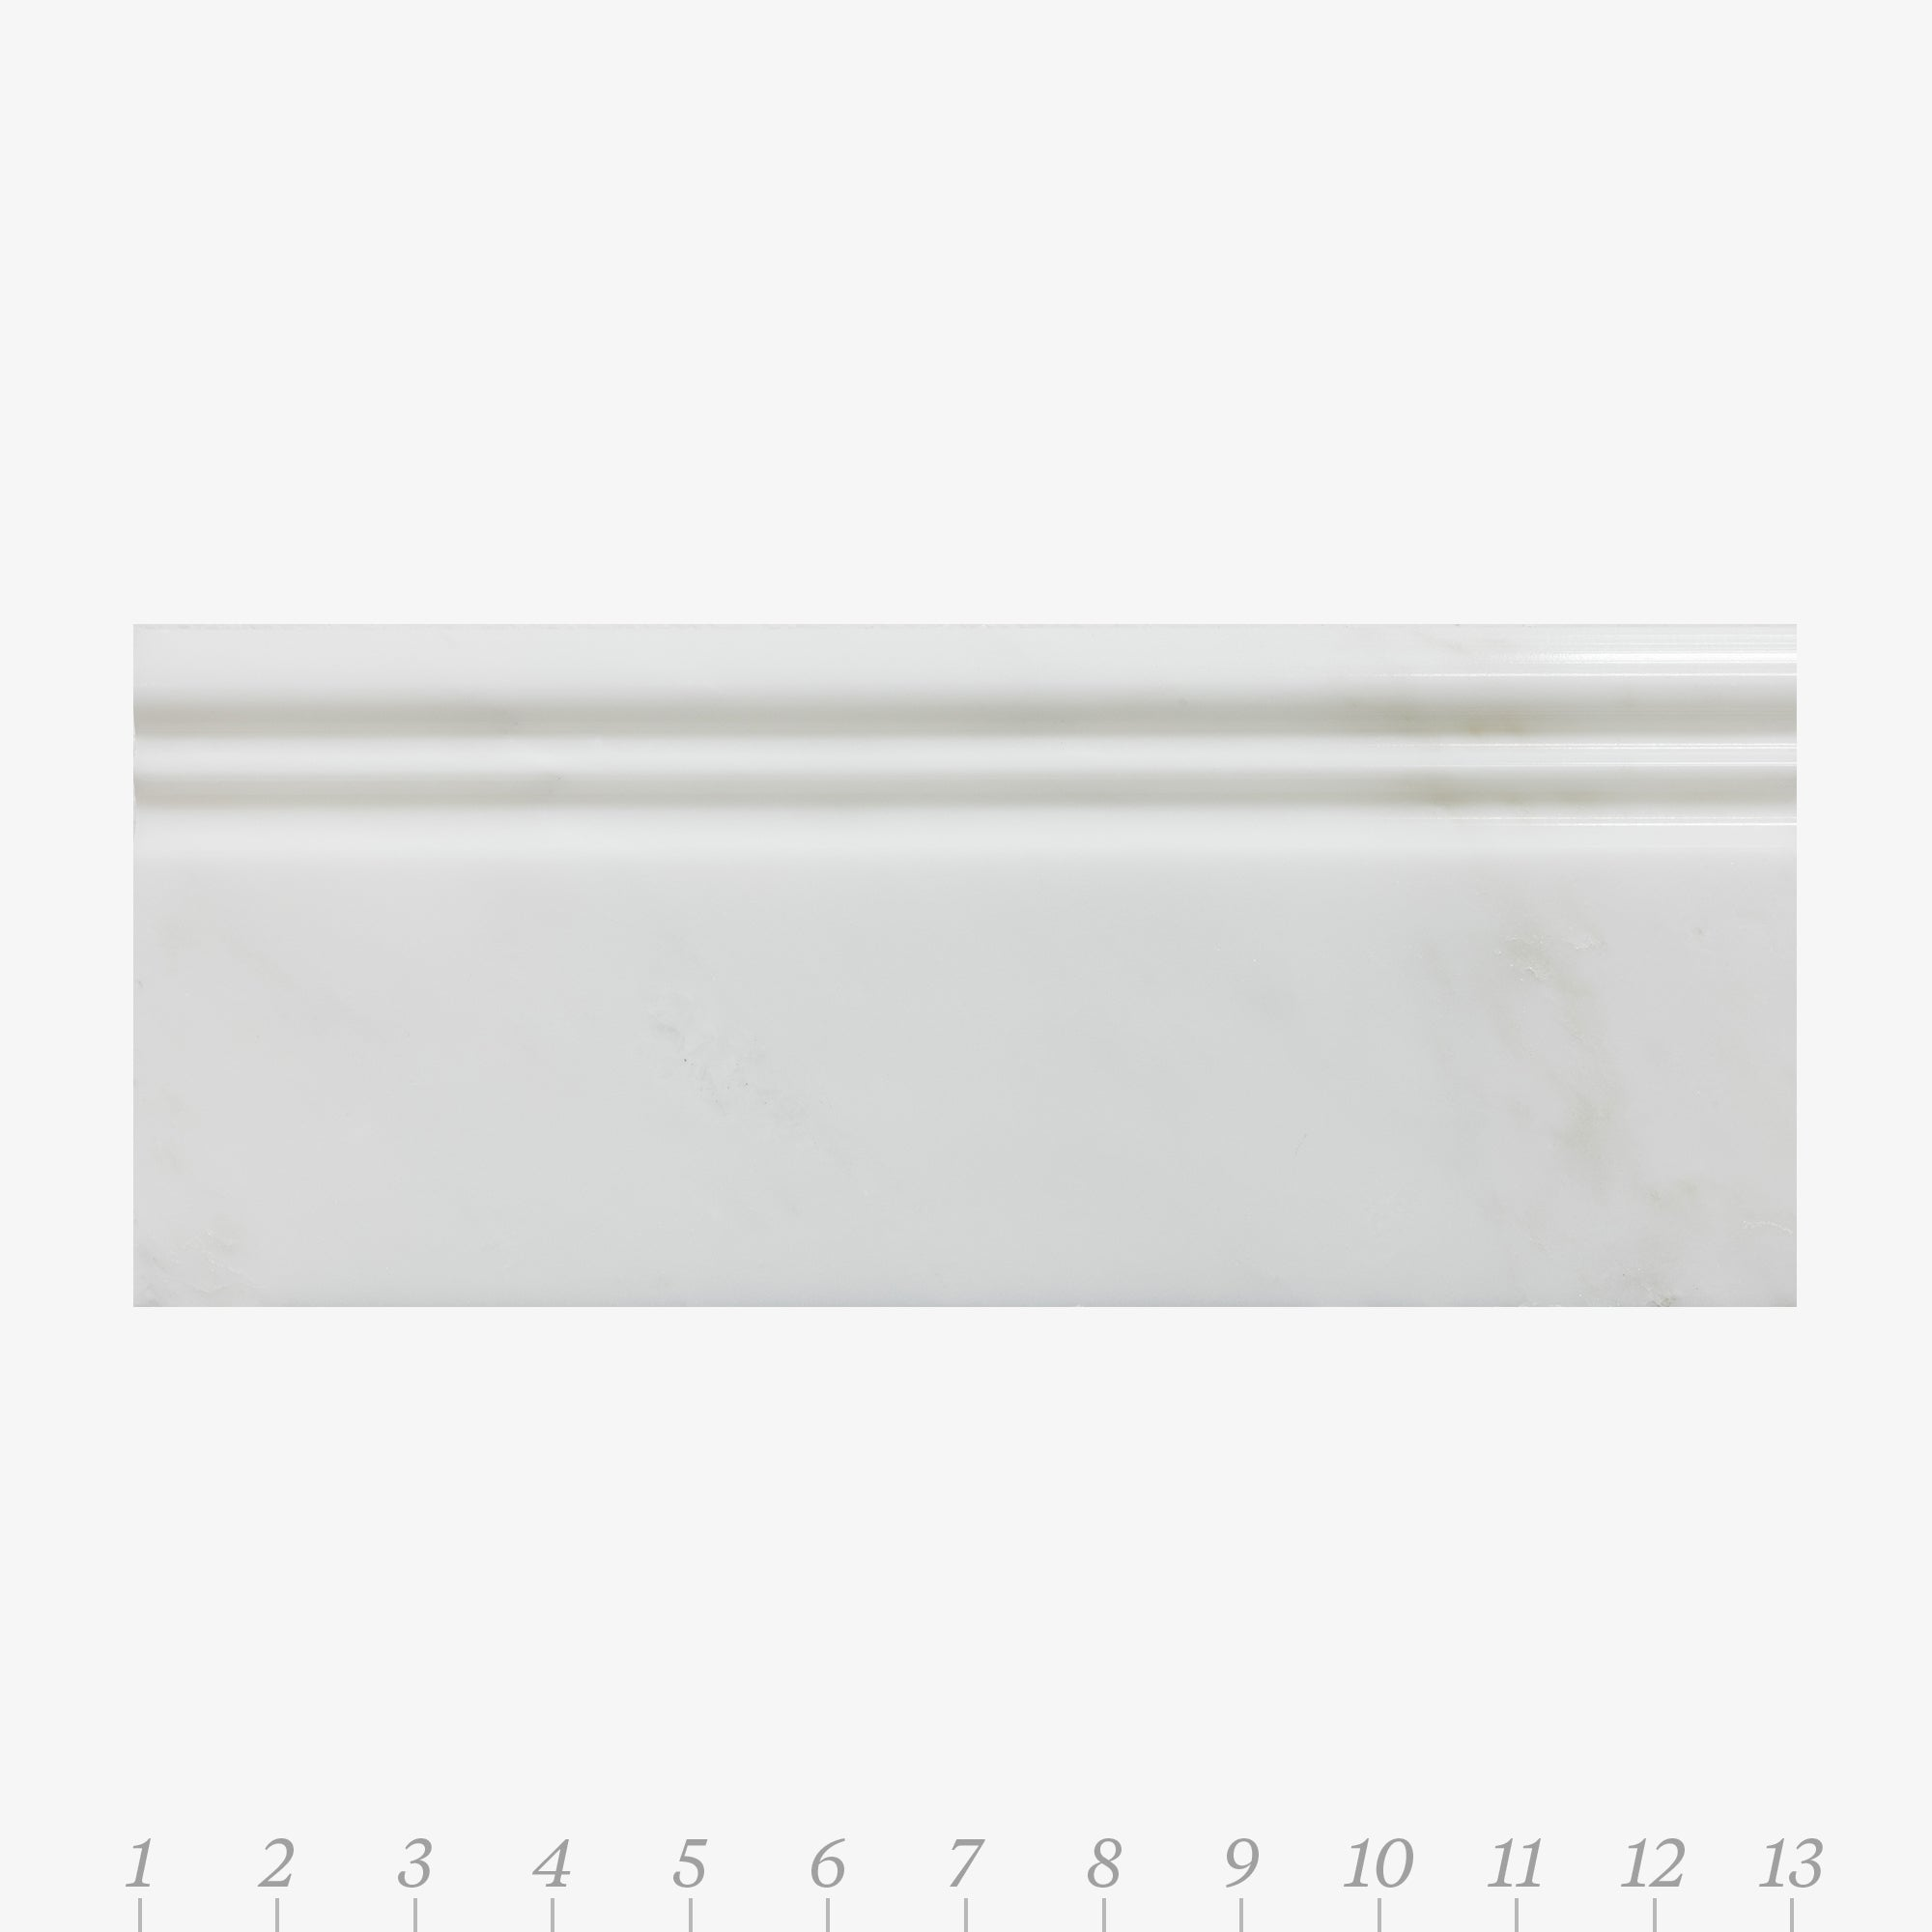 Opus 5 Pacific White Marble Swatch Card  Polished Samples Base product photo